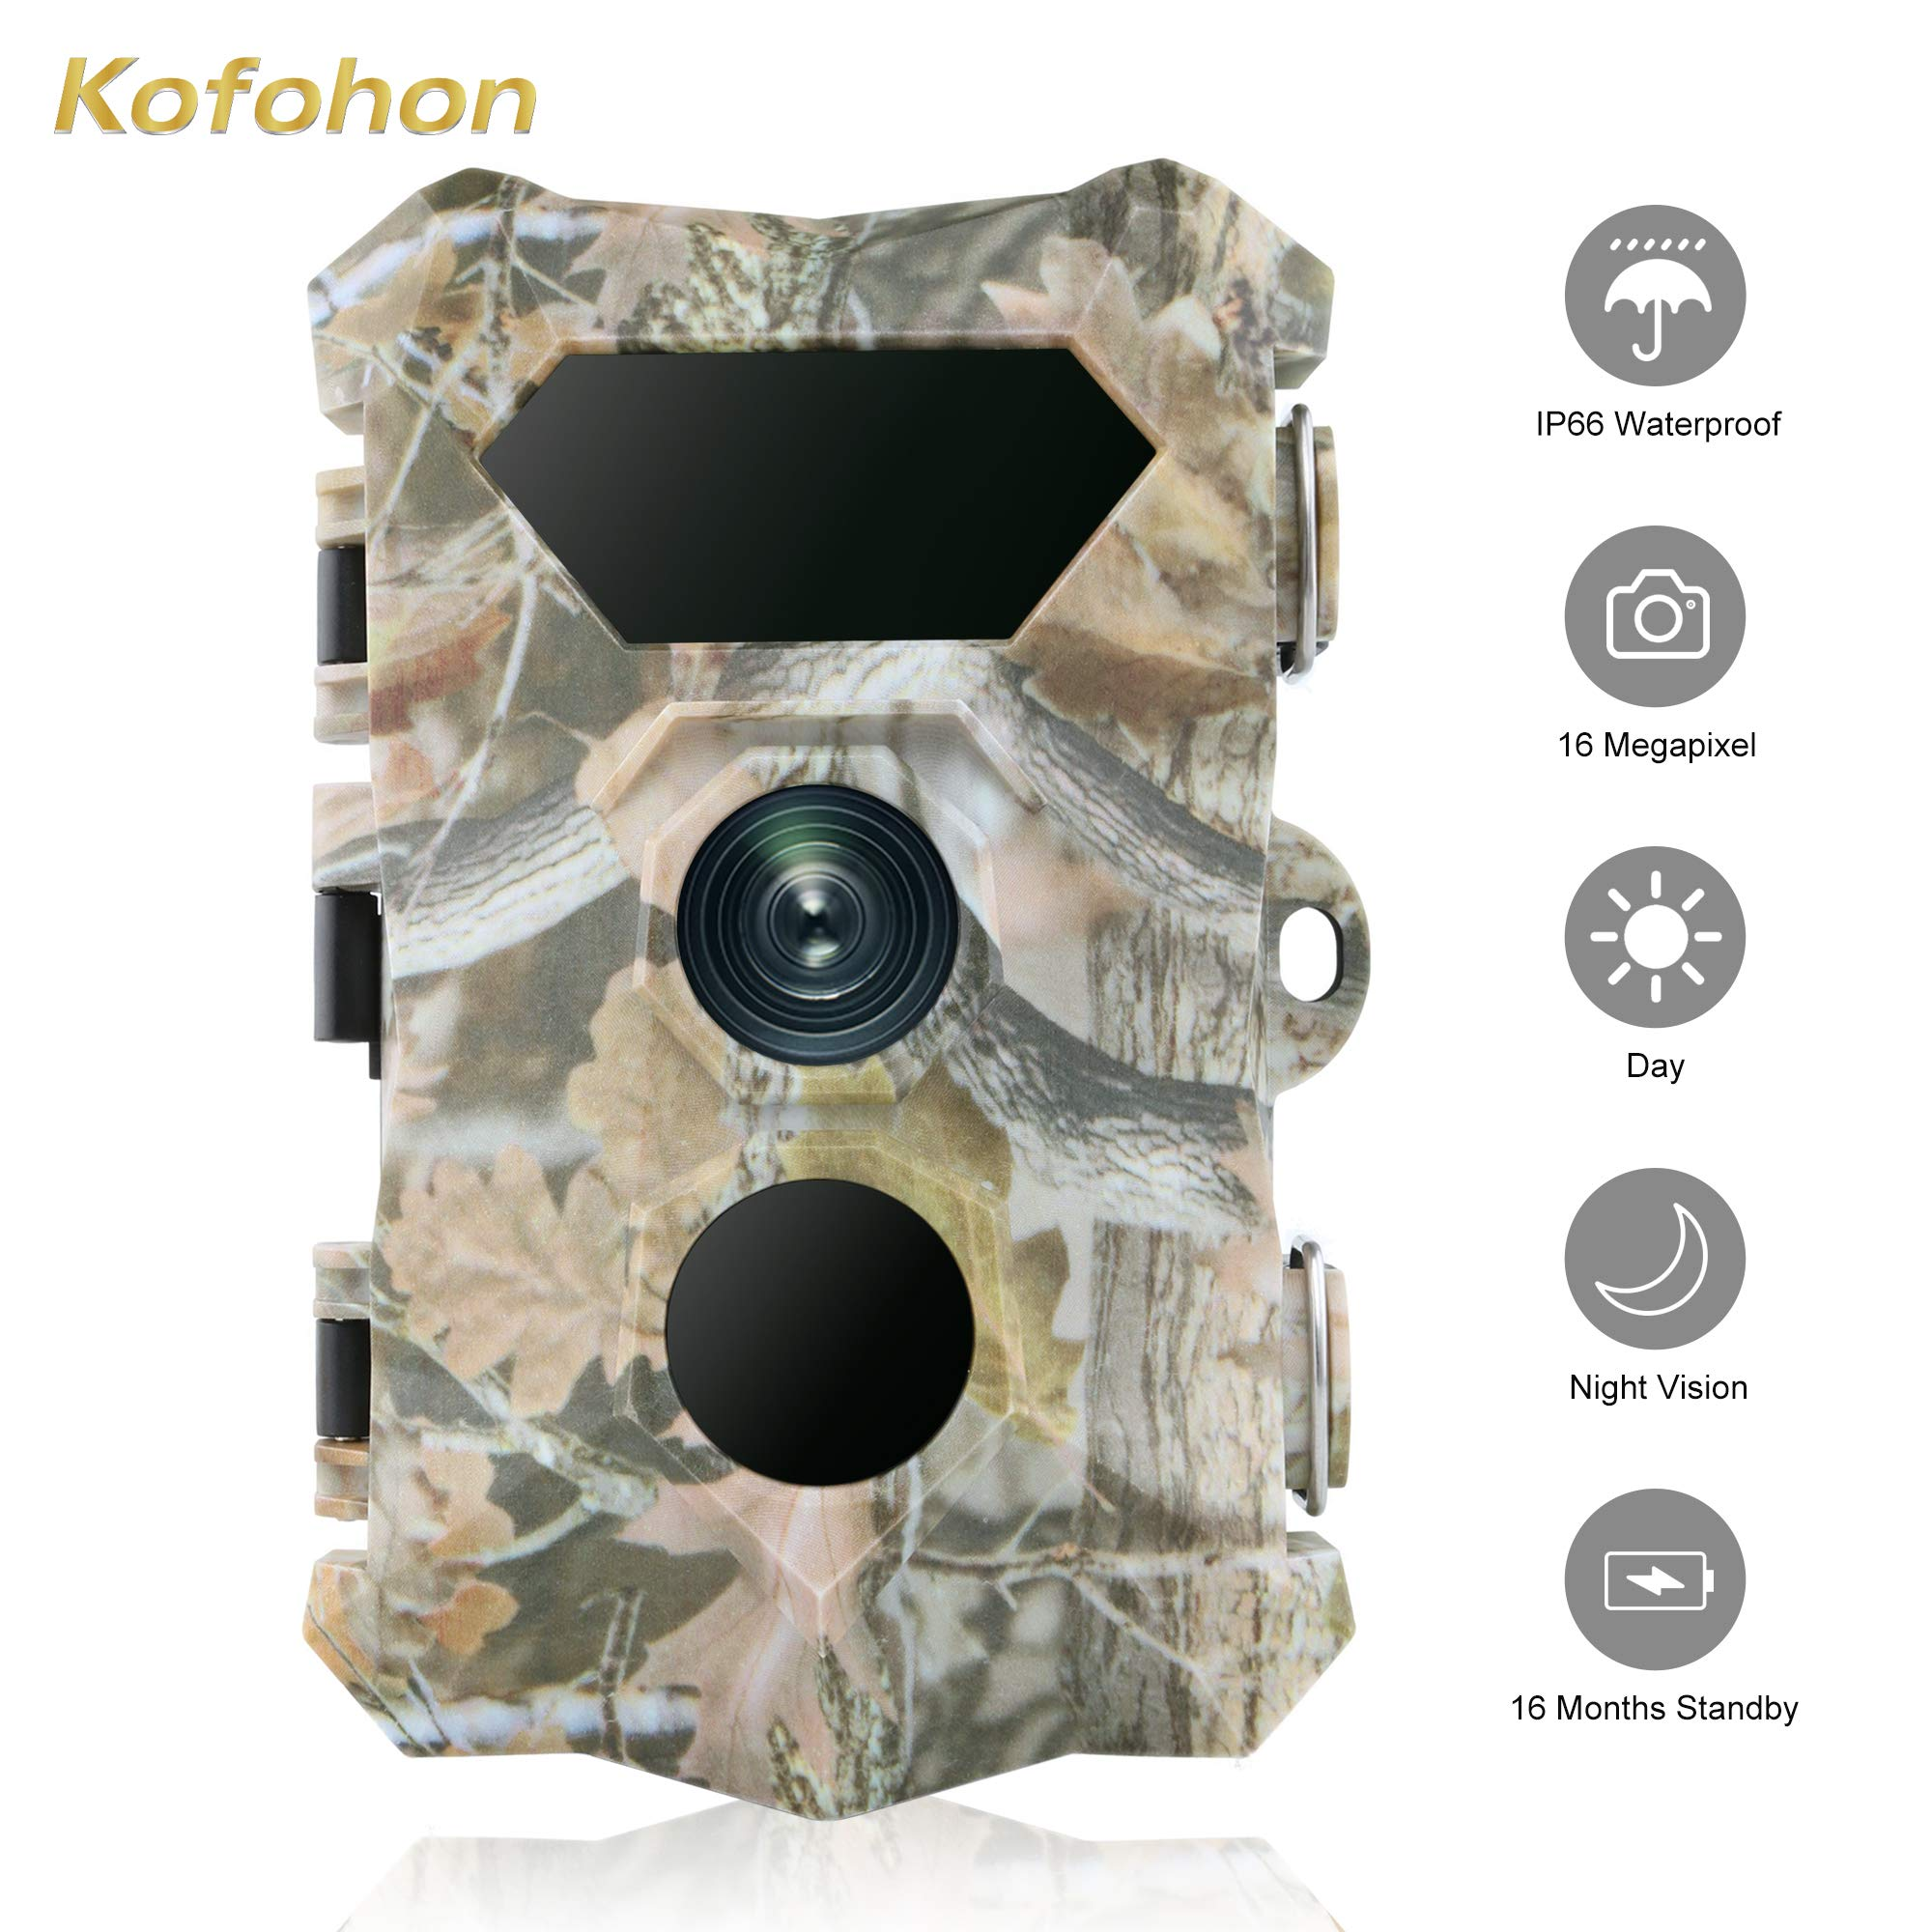 Trailcam-Hunting Wildlife Animal Trail Game Camera/Nature Deer Cams with Night Vision Motion Activated IP66 Waterproof 16MP/1080P Full HD Outdoor Home Security No/Low Flash Infrared 0.2s Trigger Time